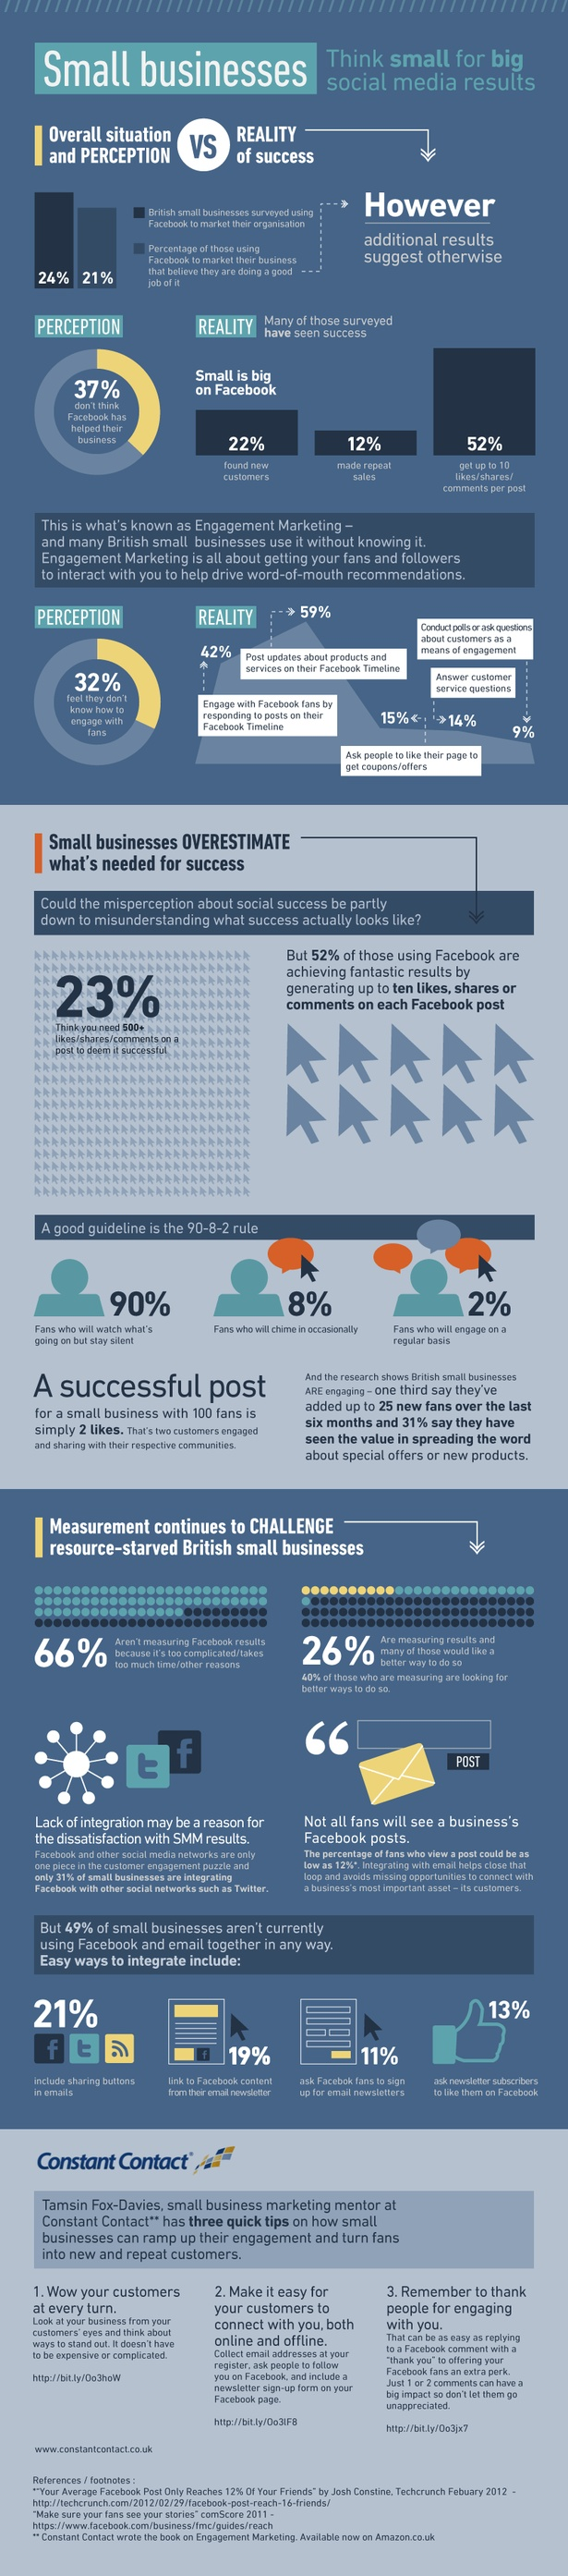 Small Business Success with Social Media Marketing [infographic]Social Media Marketing, Business Social, Marketing Tips, Big Social, Email Marketing, Media Infographic, Small Businesses, Socialmedia, Business Infographic